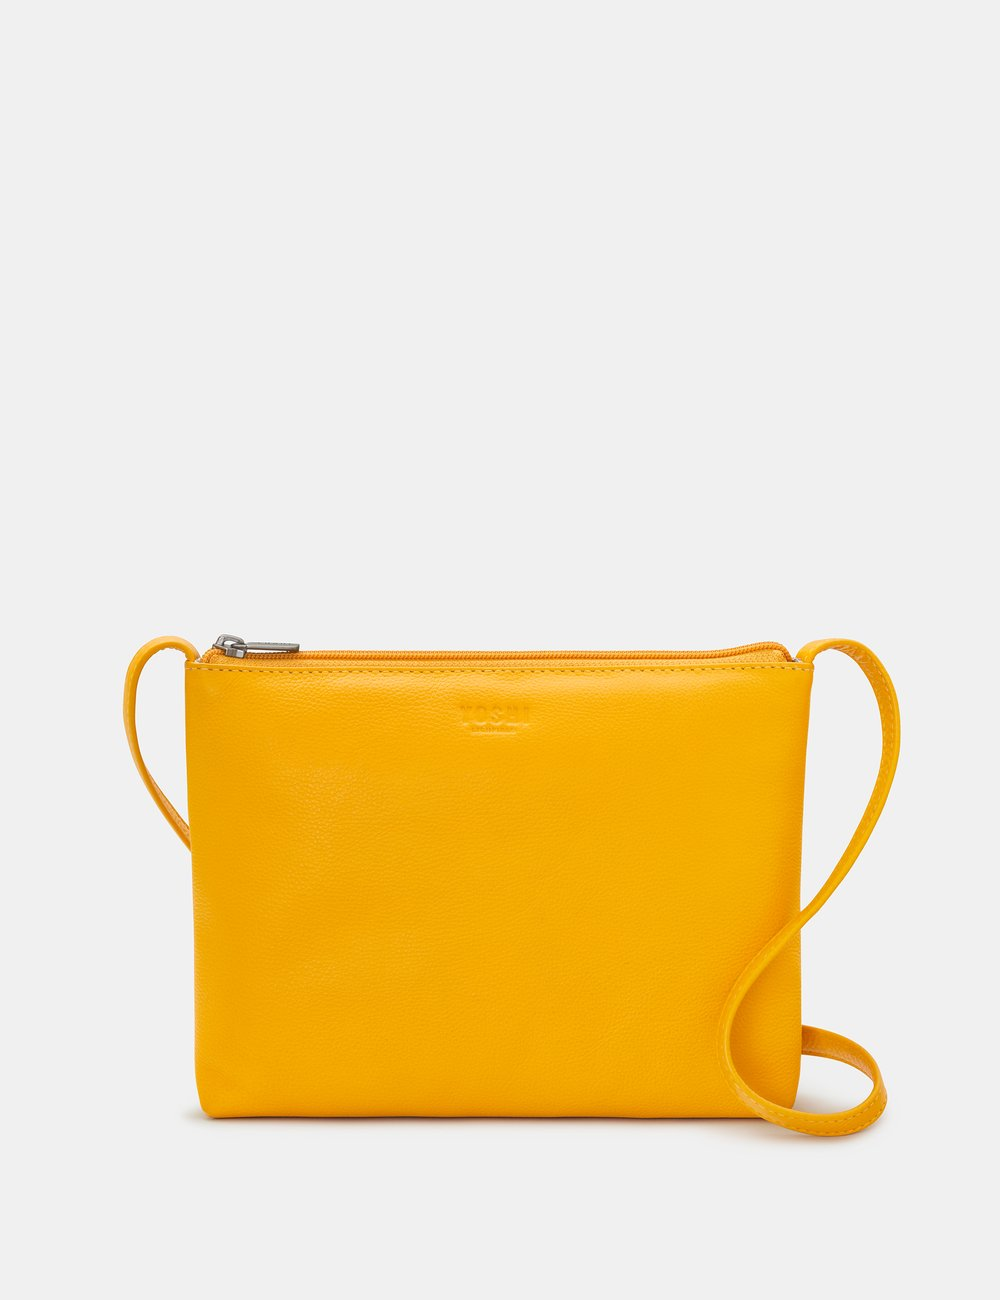 Yoshi Parker Leather Crossbody Bag - Mustard